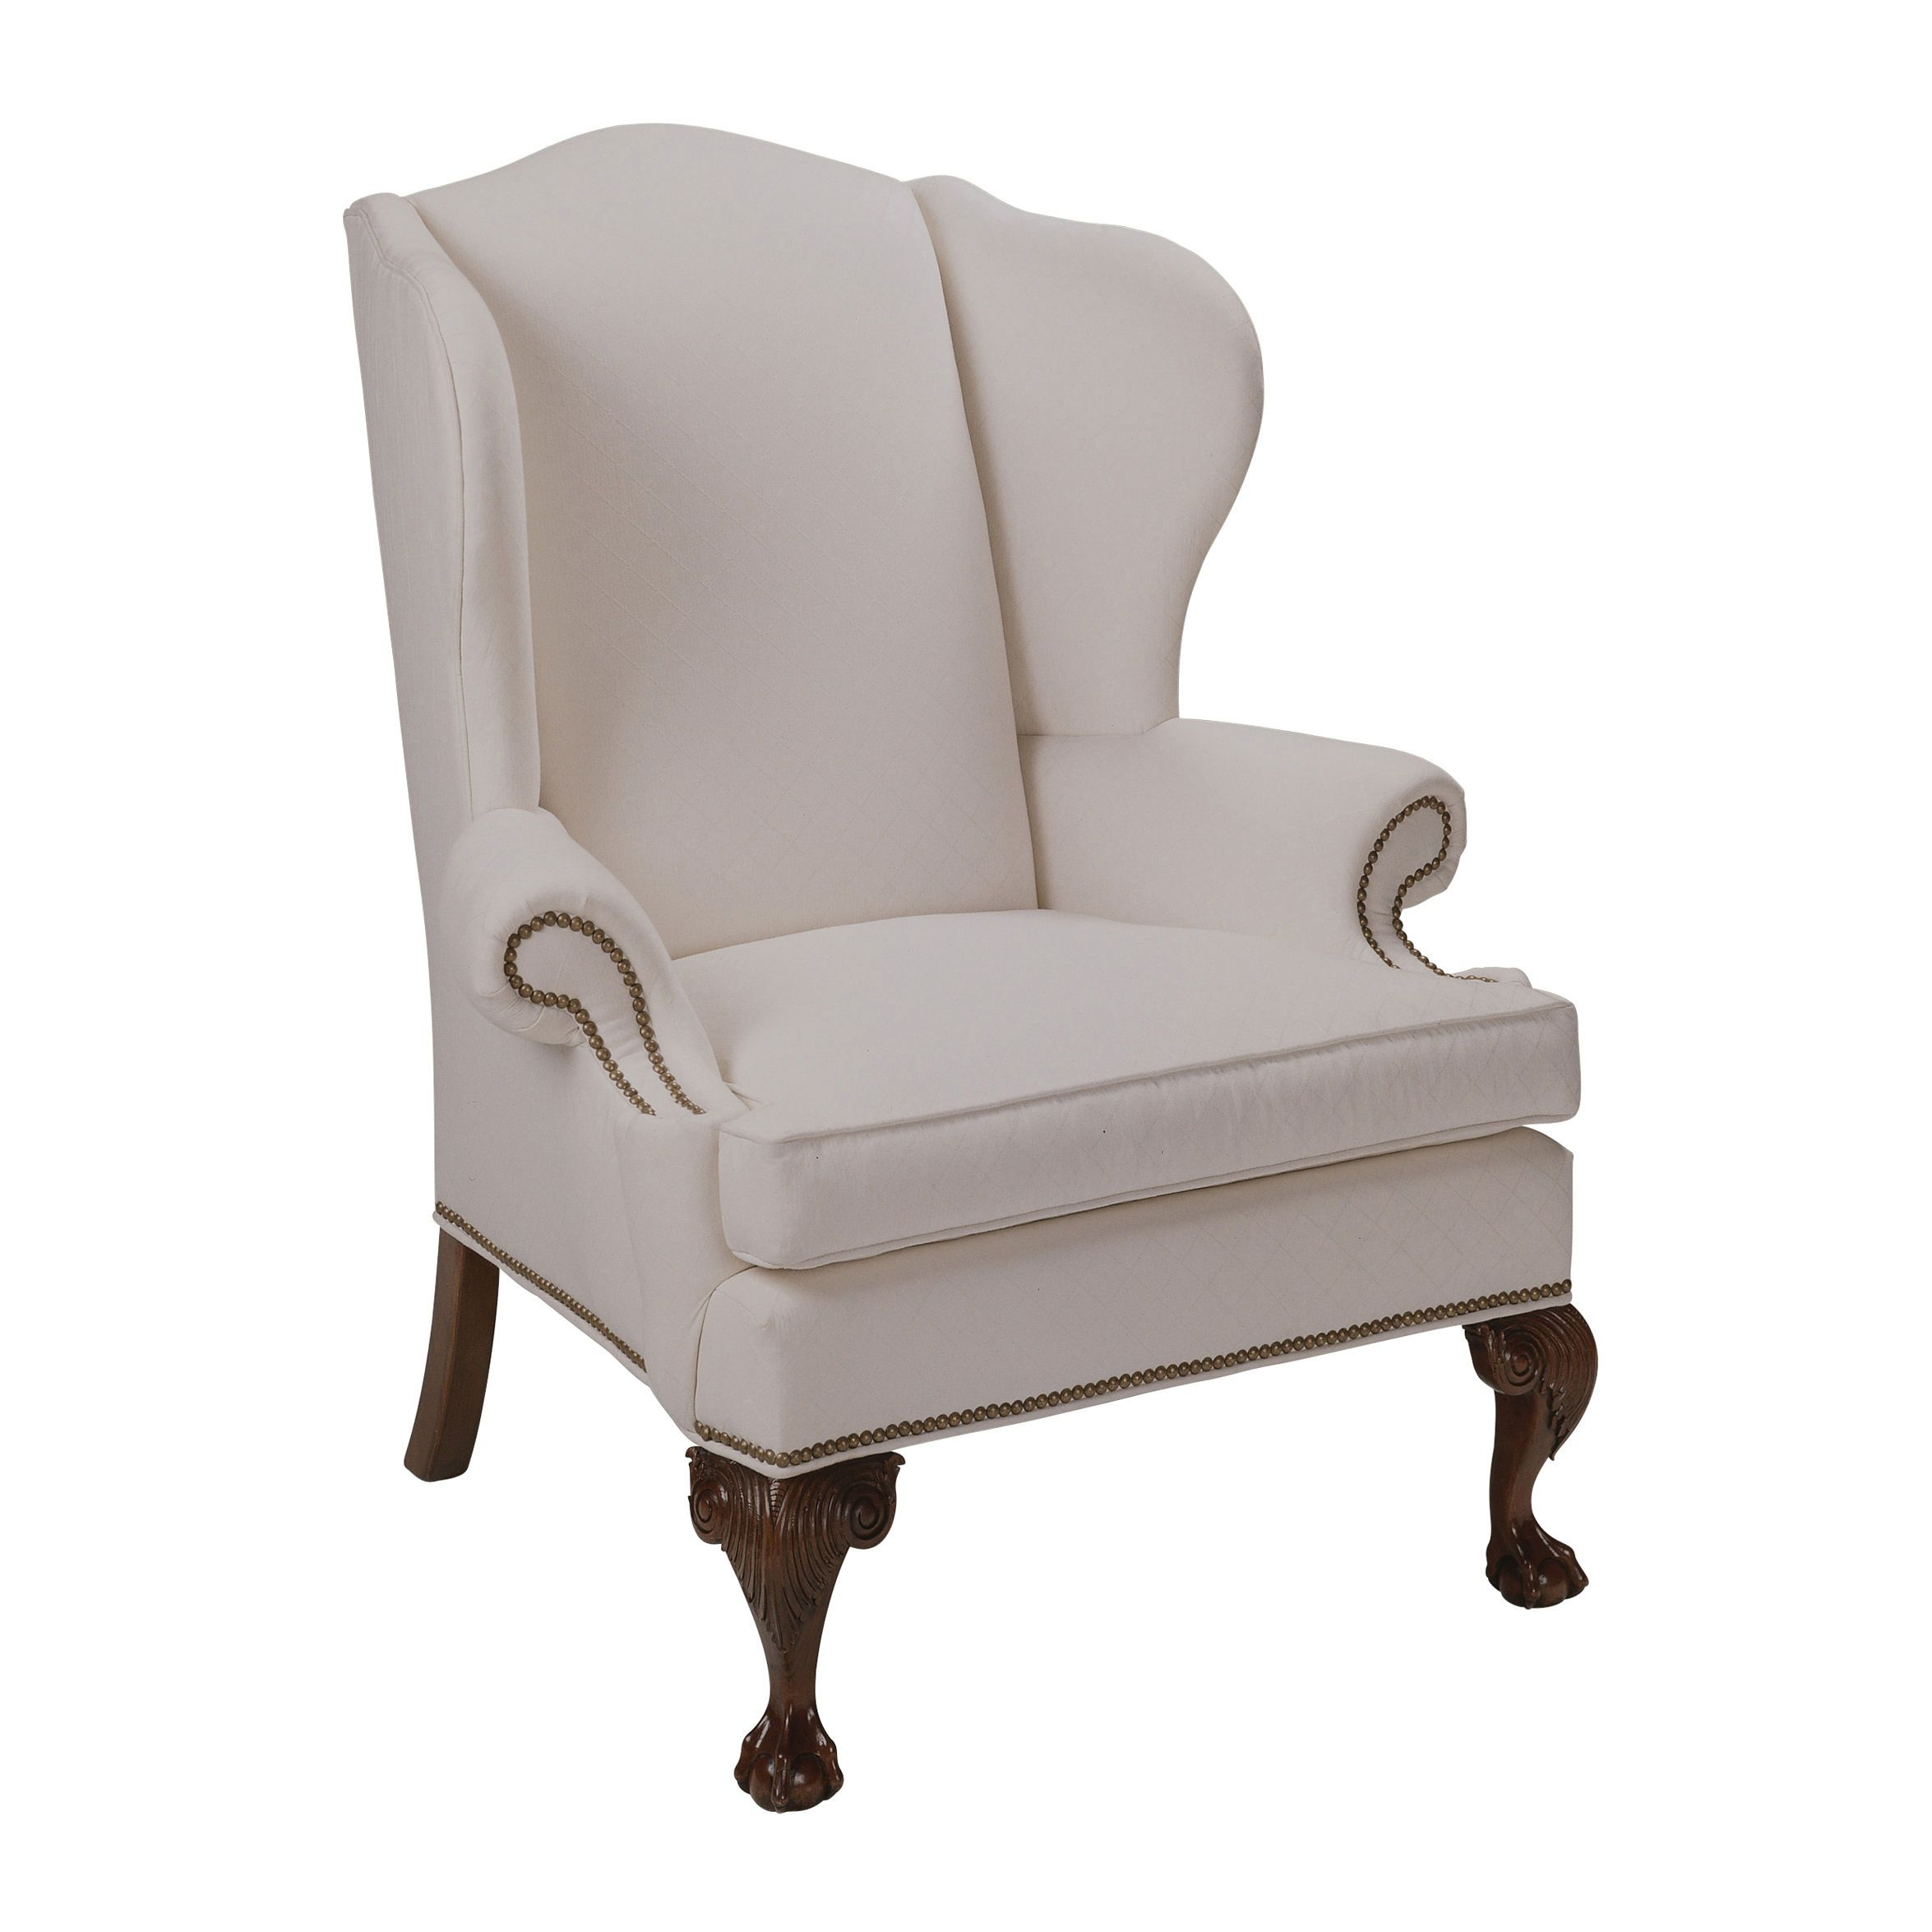 Giles Chair Ethan Allen Us Furniture Accent Chairs For Living